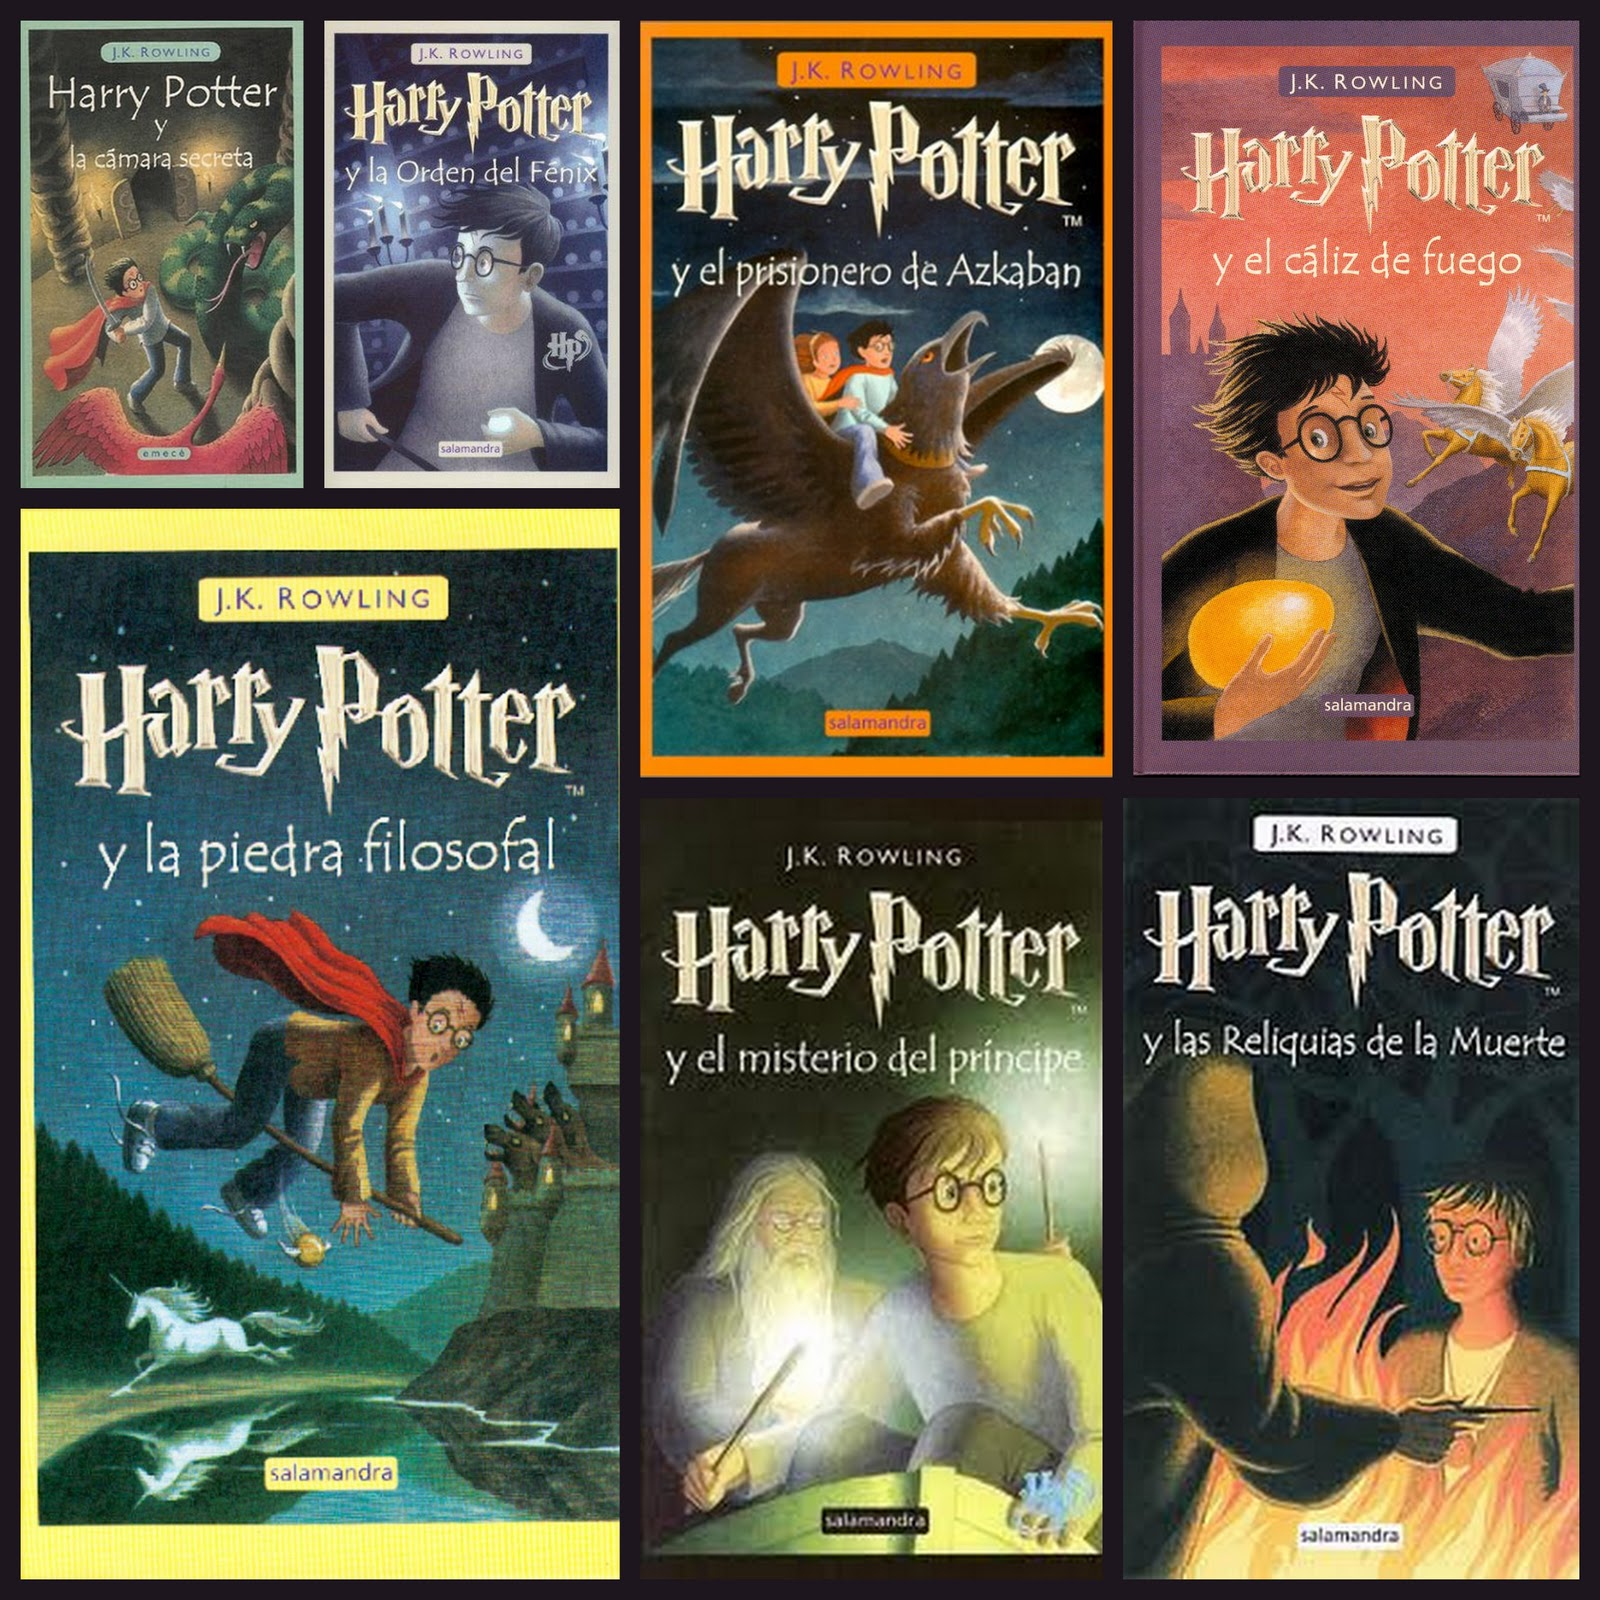 Saga-Harry-Potter-book-tag-tu-vida-en-libros-interesantes-opinion-nominaciones-blogs-blogger-libros